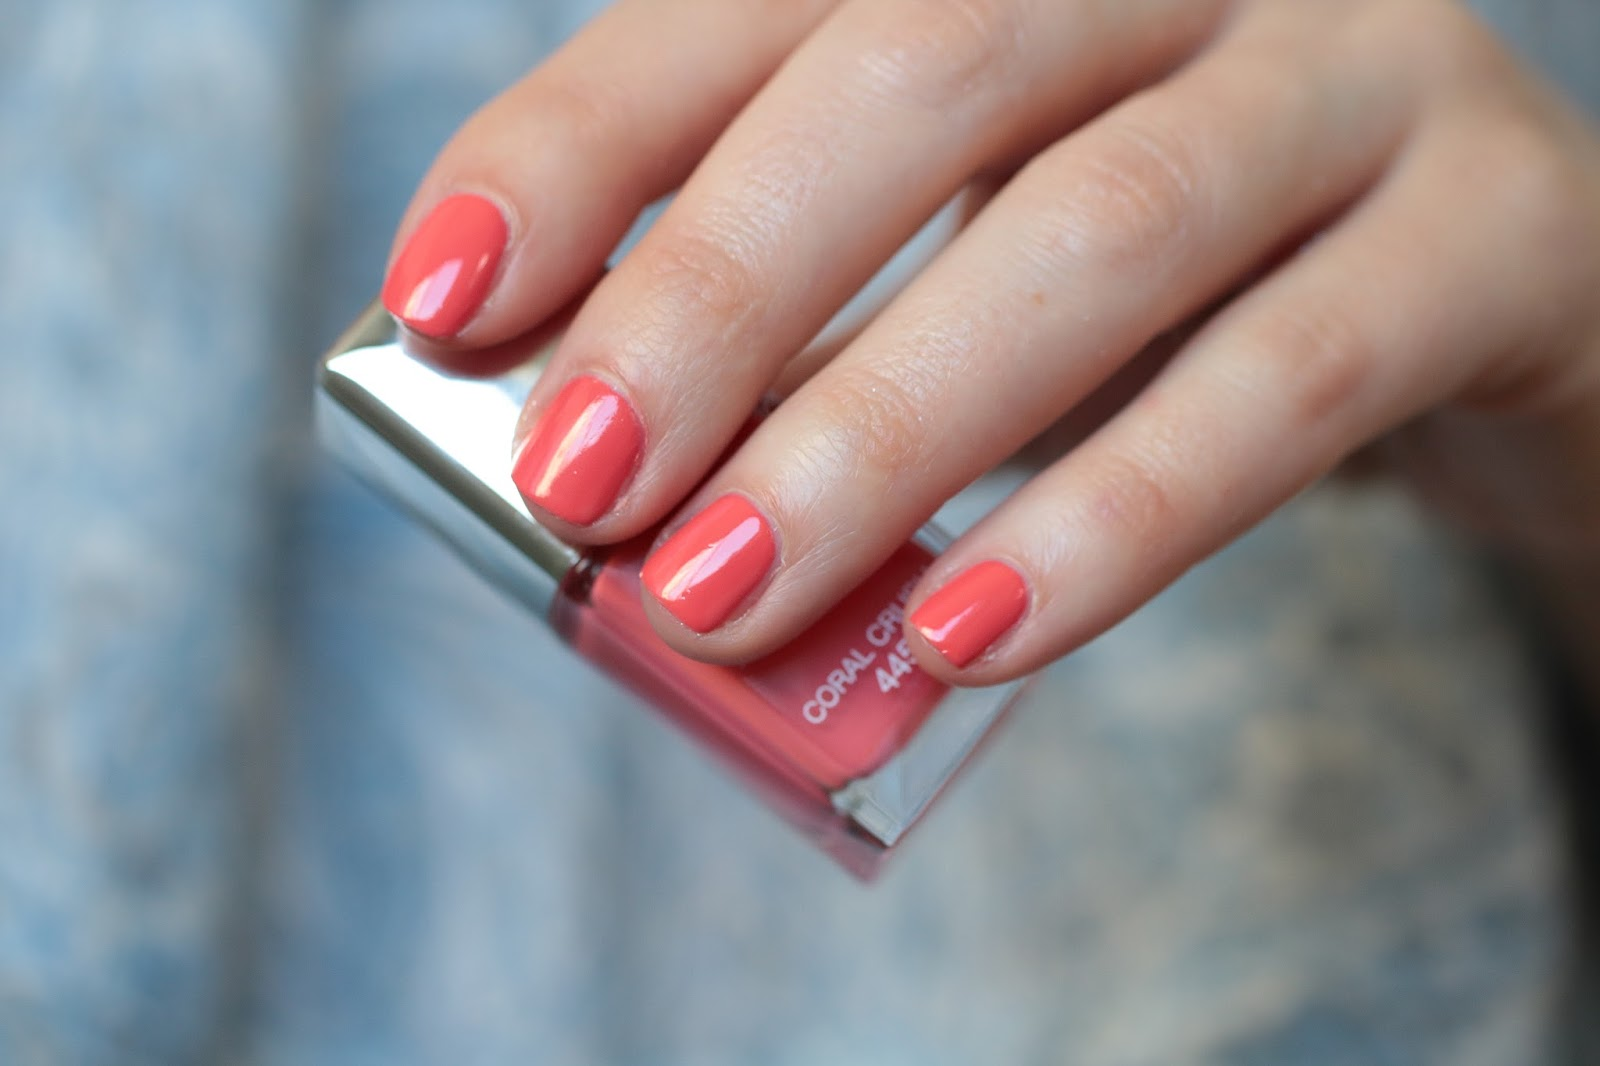 Ongles ete 2017 corail - Ongle tendance ete 2017 ...